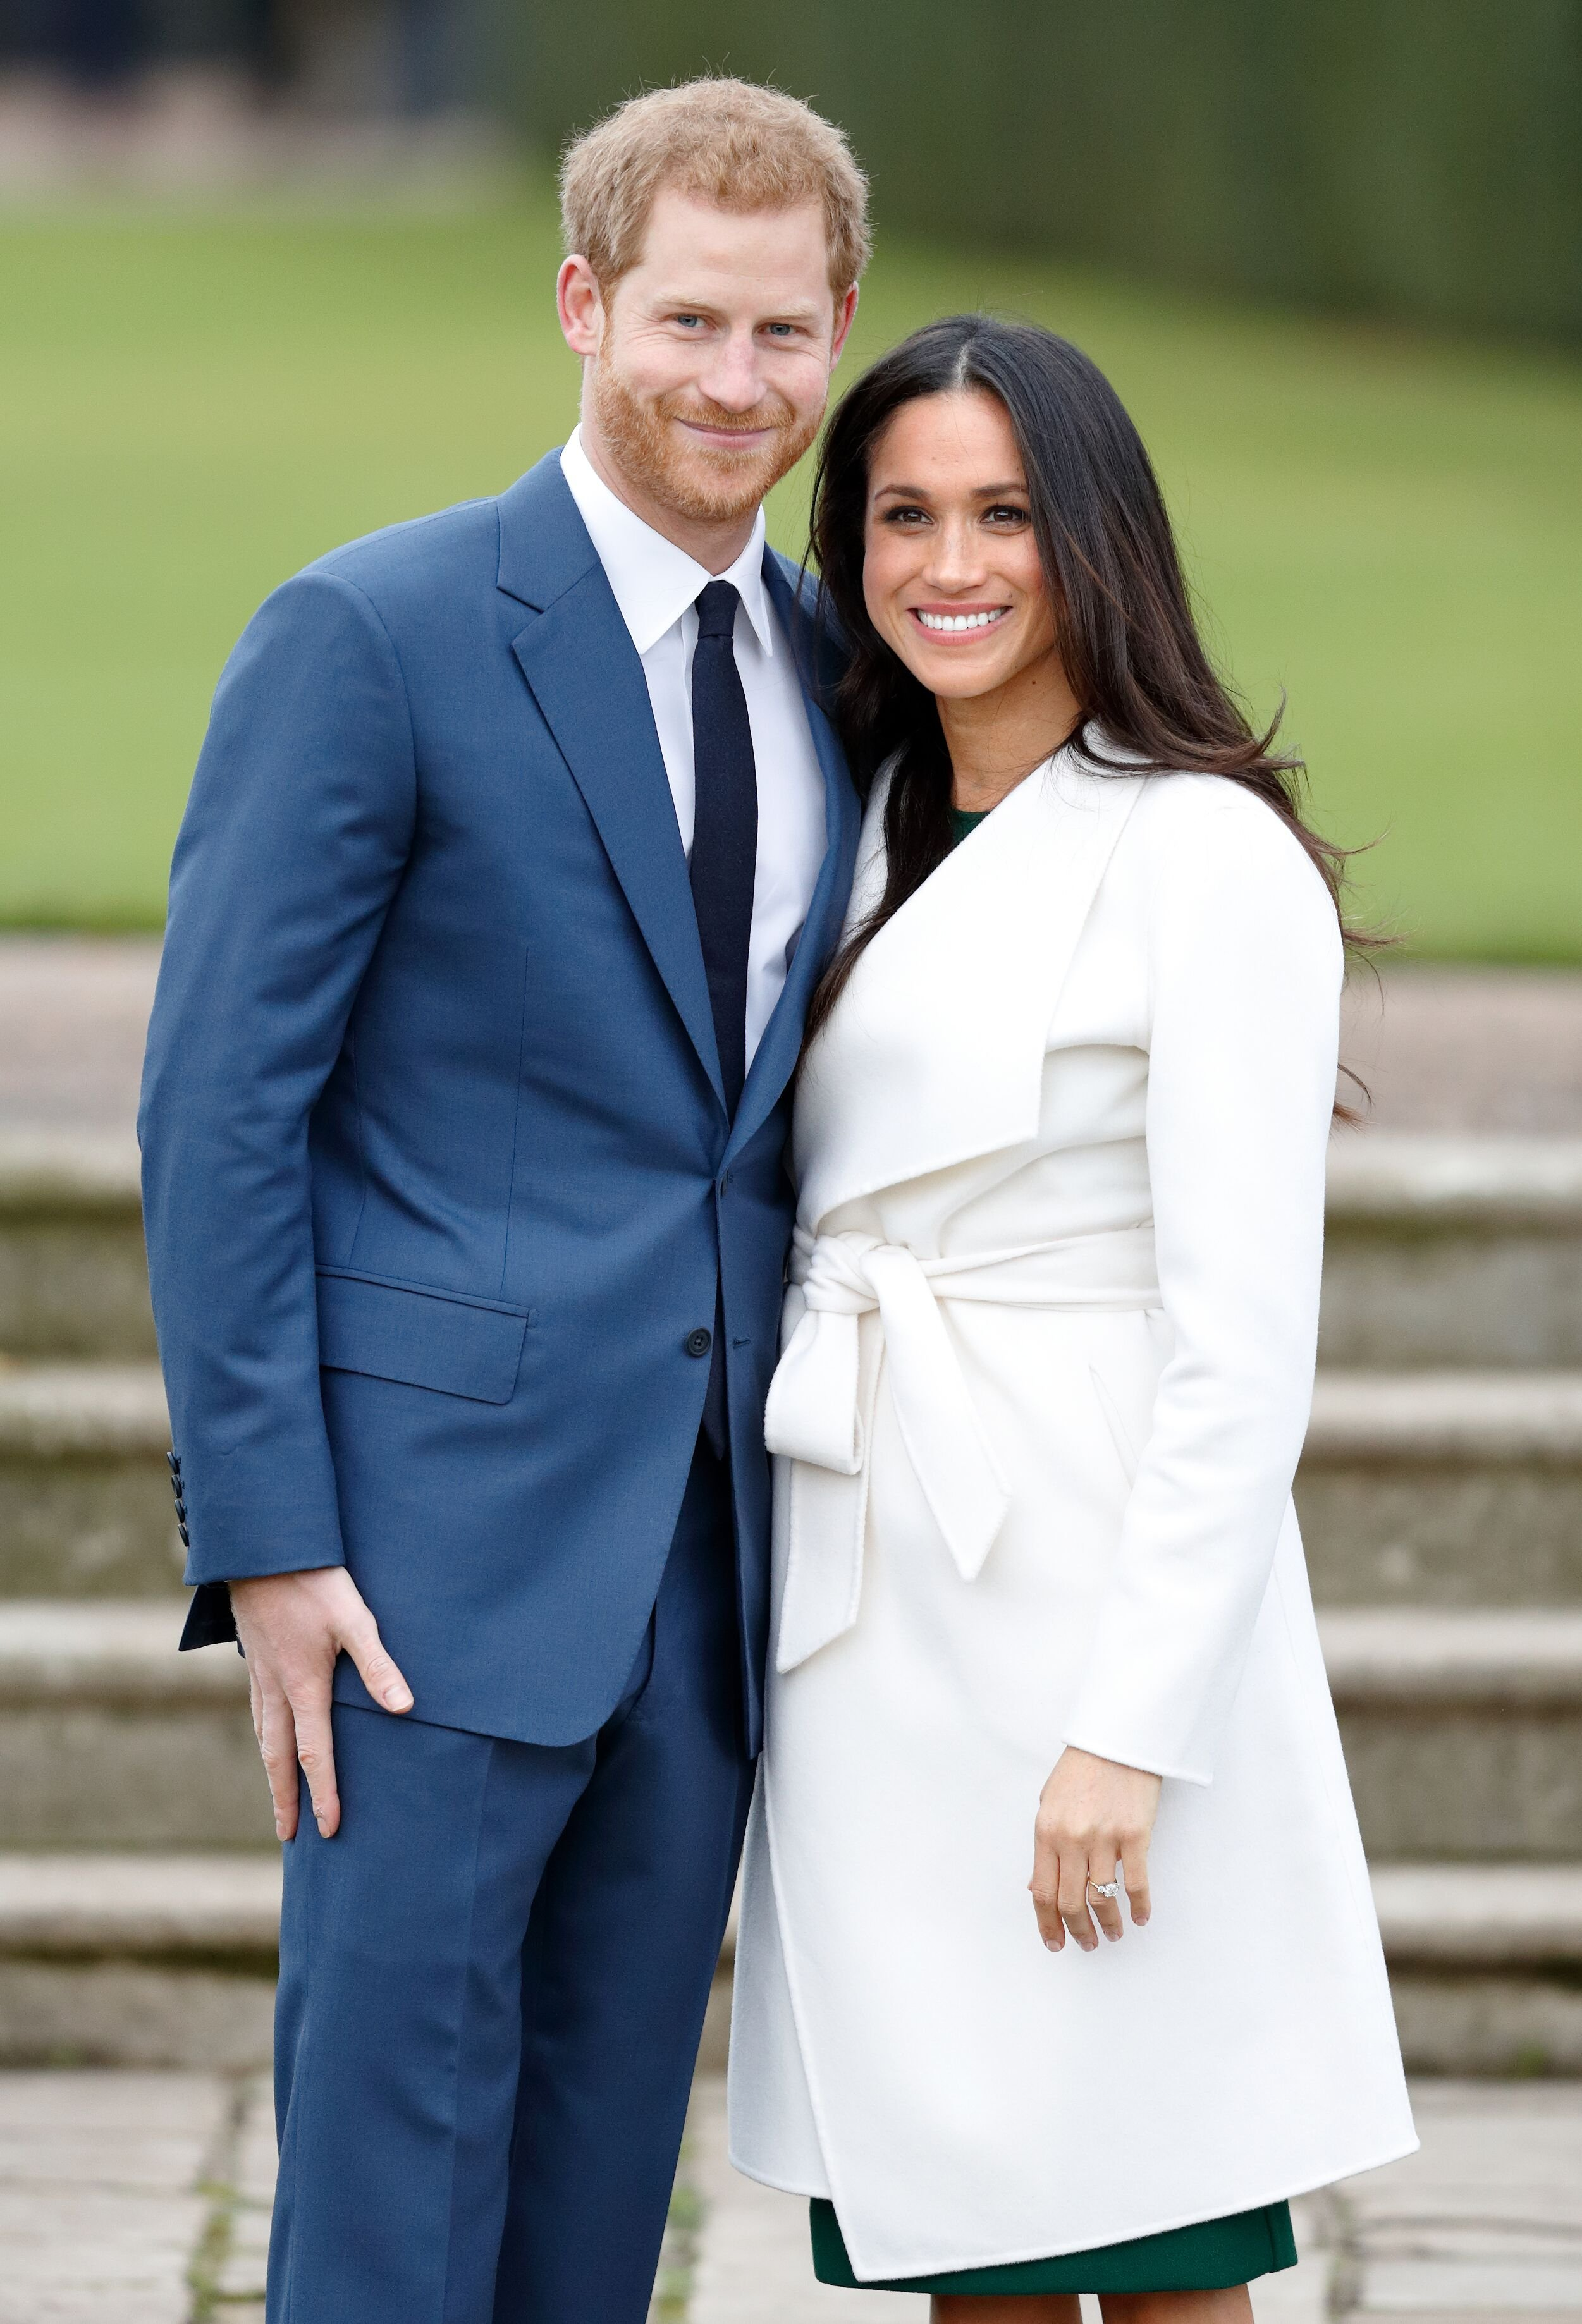 Meghan Markle and Prince Harry's engagement photographs | Getty Images / Global Images Ukraine